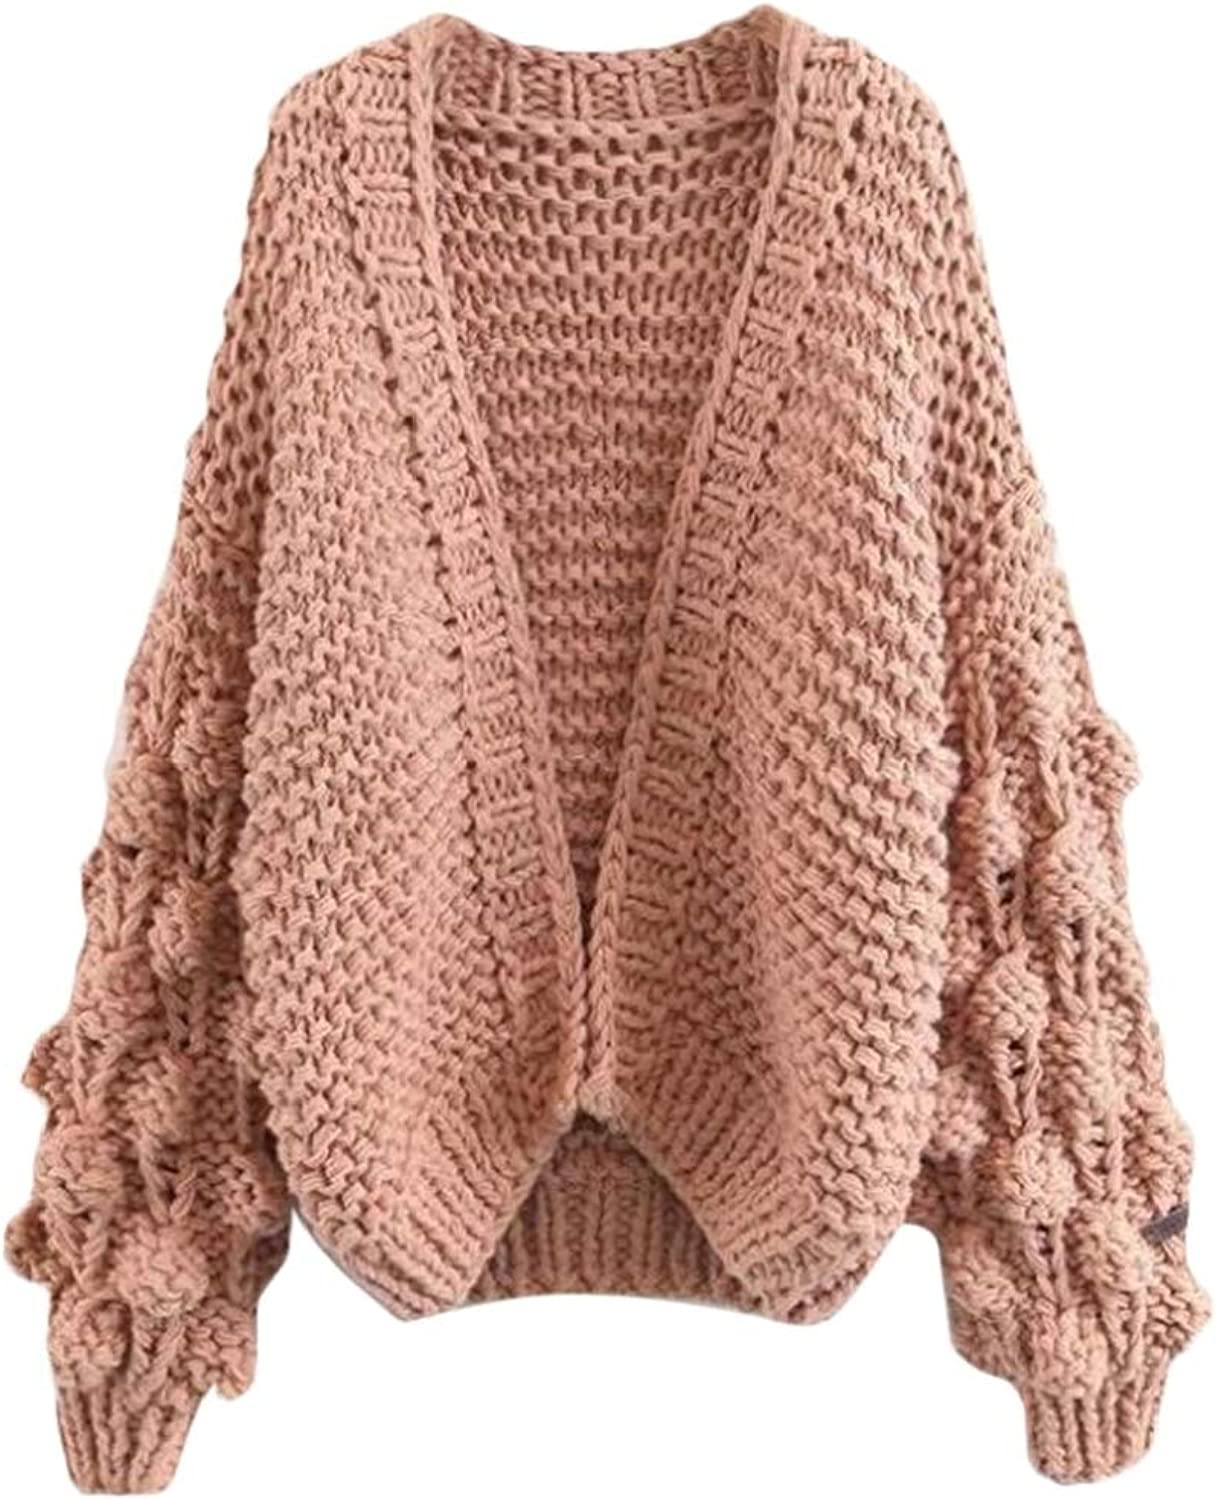 Zantt Women Puff Sleeve Kint RelaxedFit Solid color Cardigan Sweater